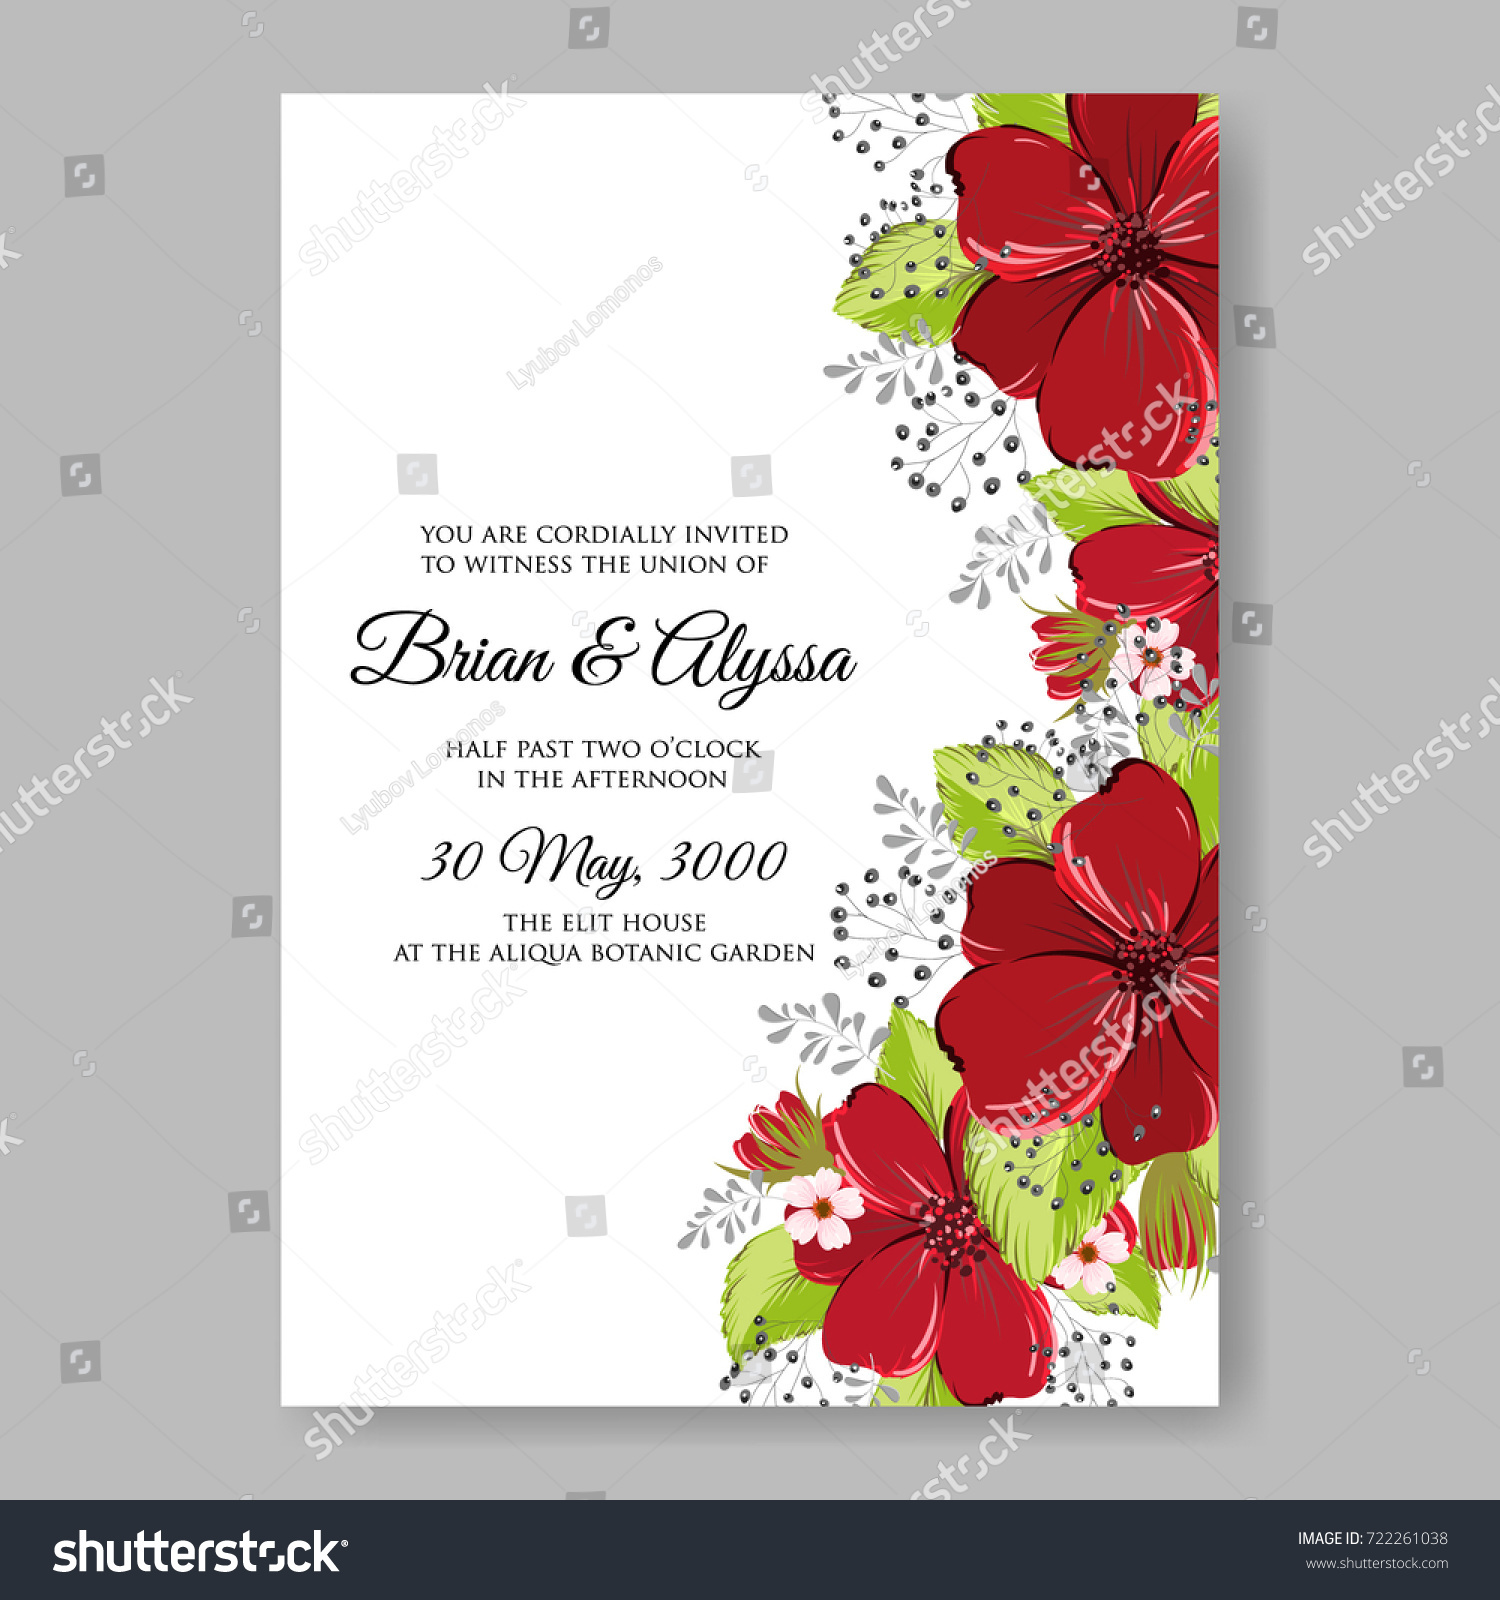 Floral Red Anemone Wedding Invitation Card Stock Vector 722261038 ...